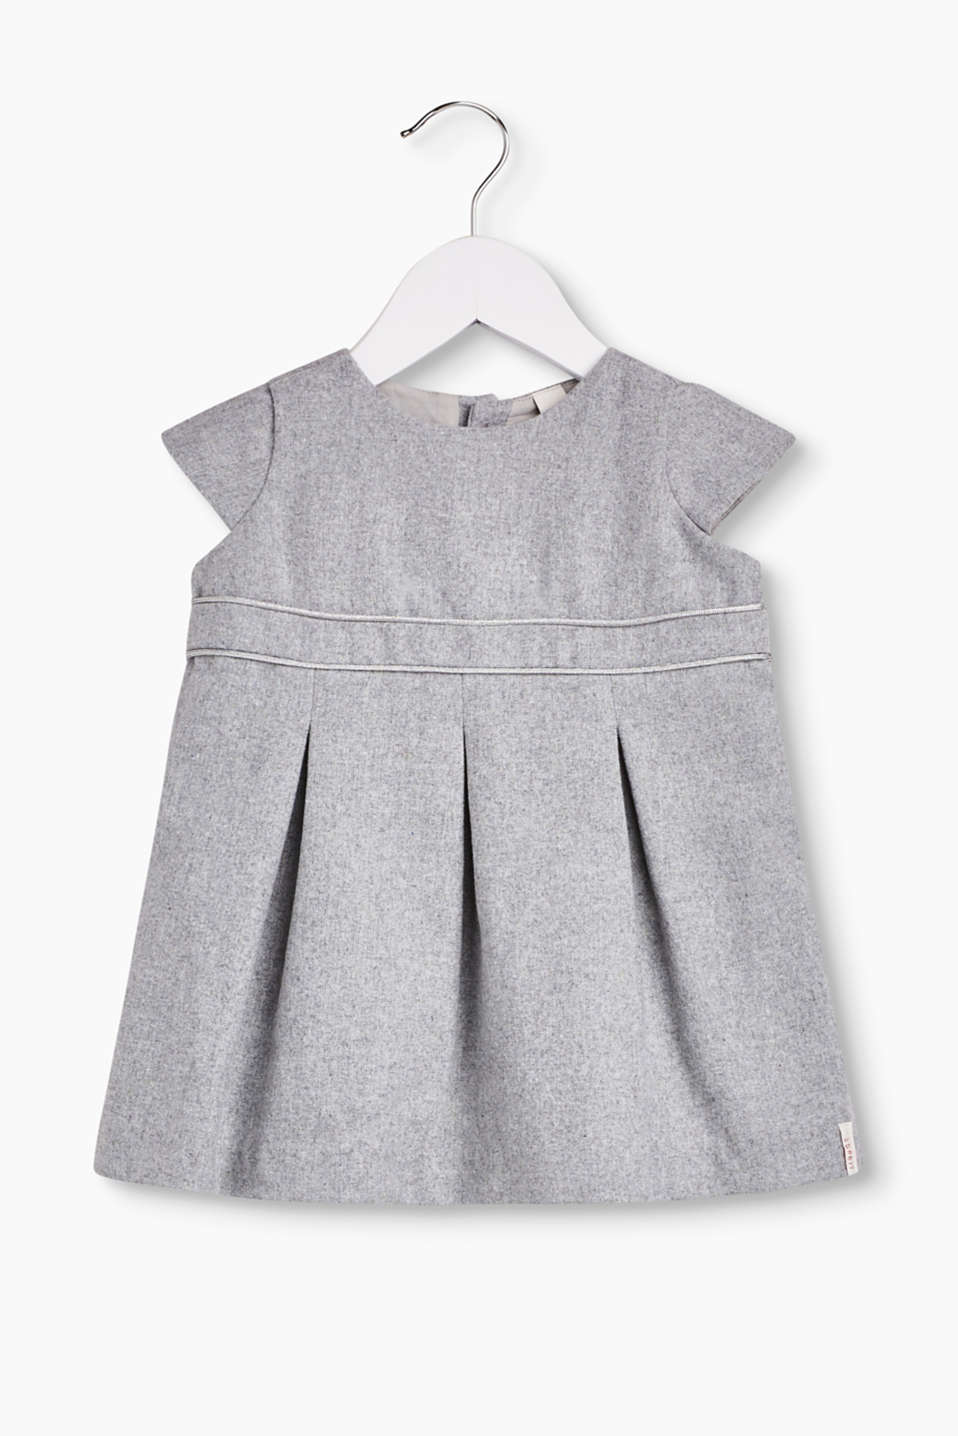 This grey flannel dress stands out with its swirling width and waist panel with shimmering piping